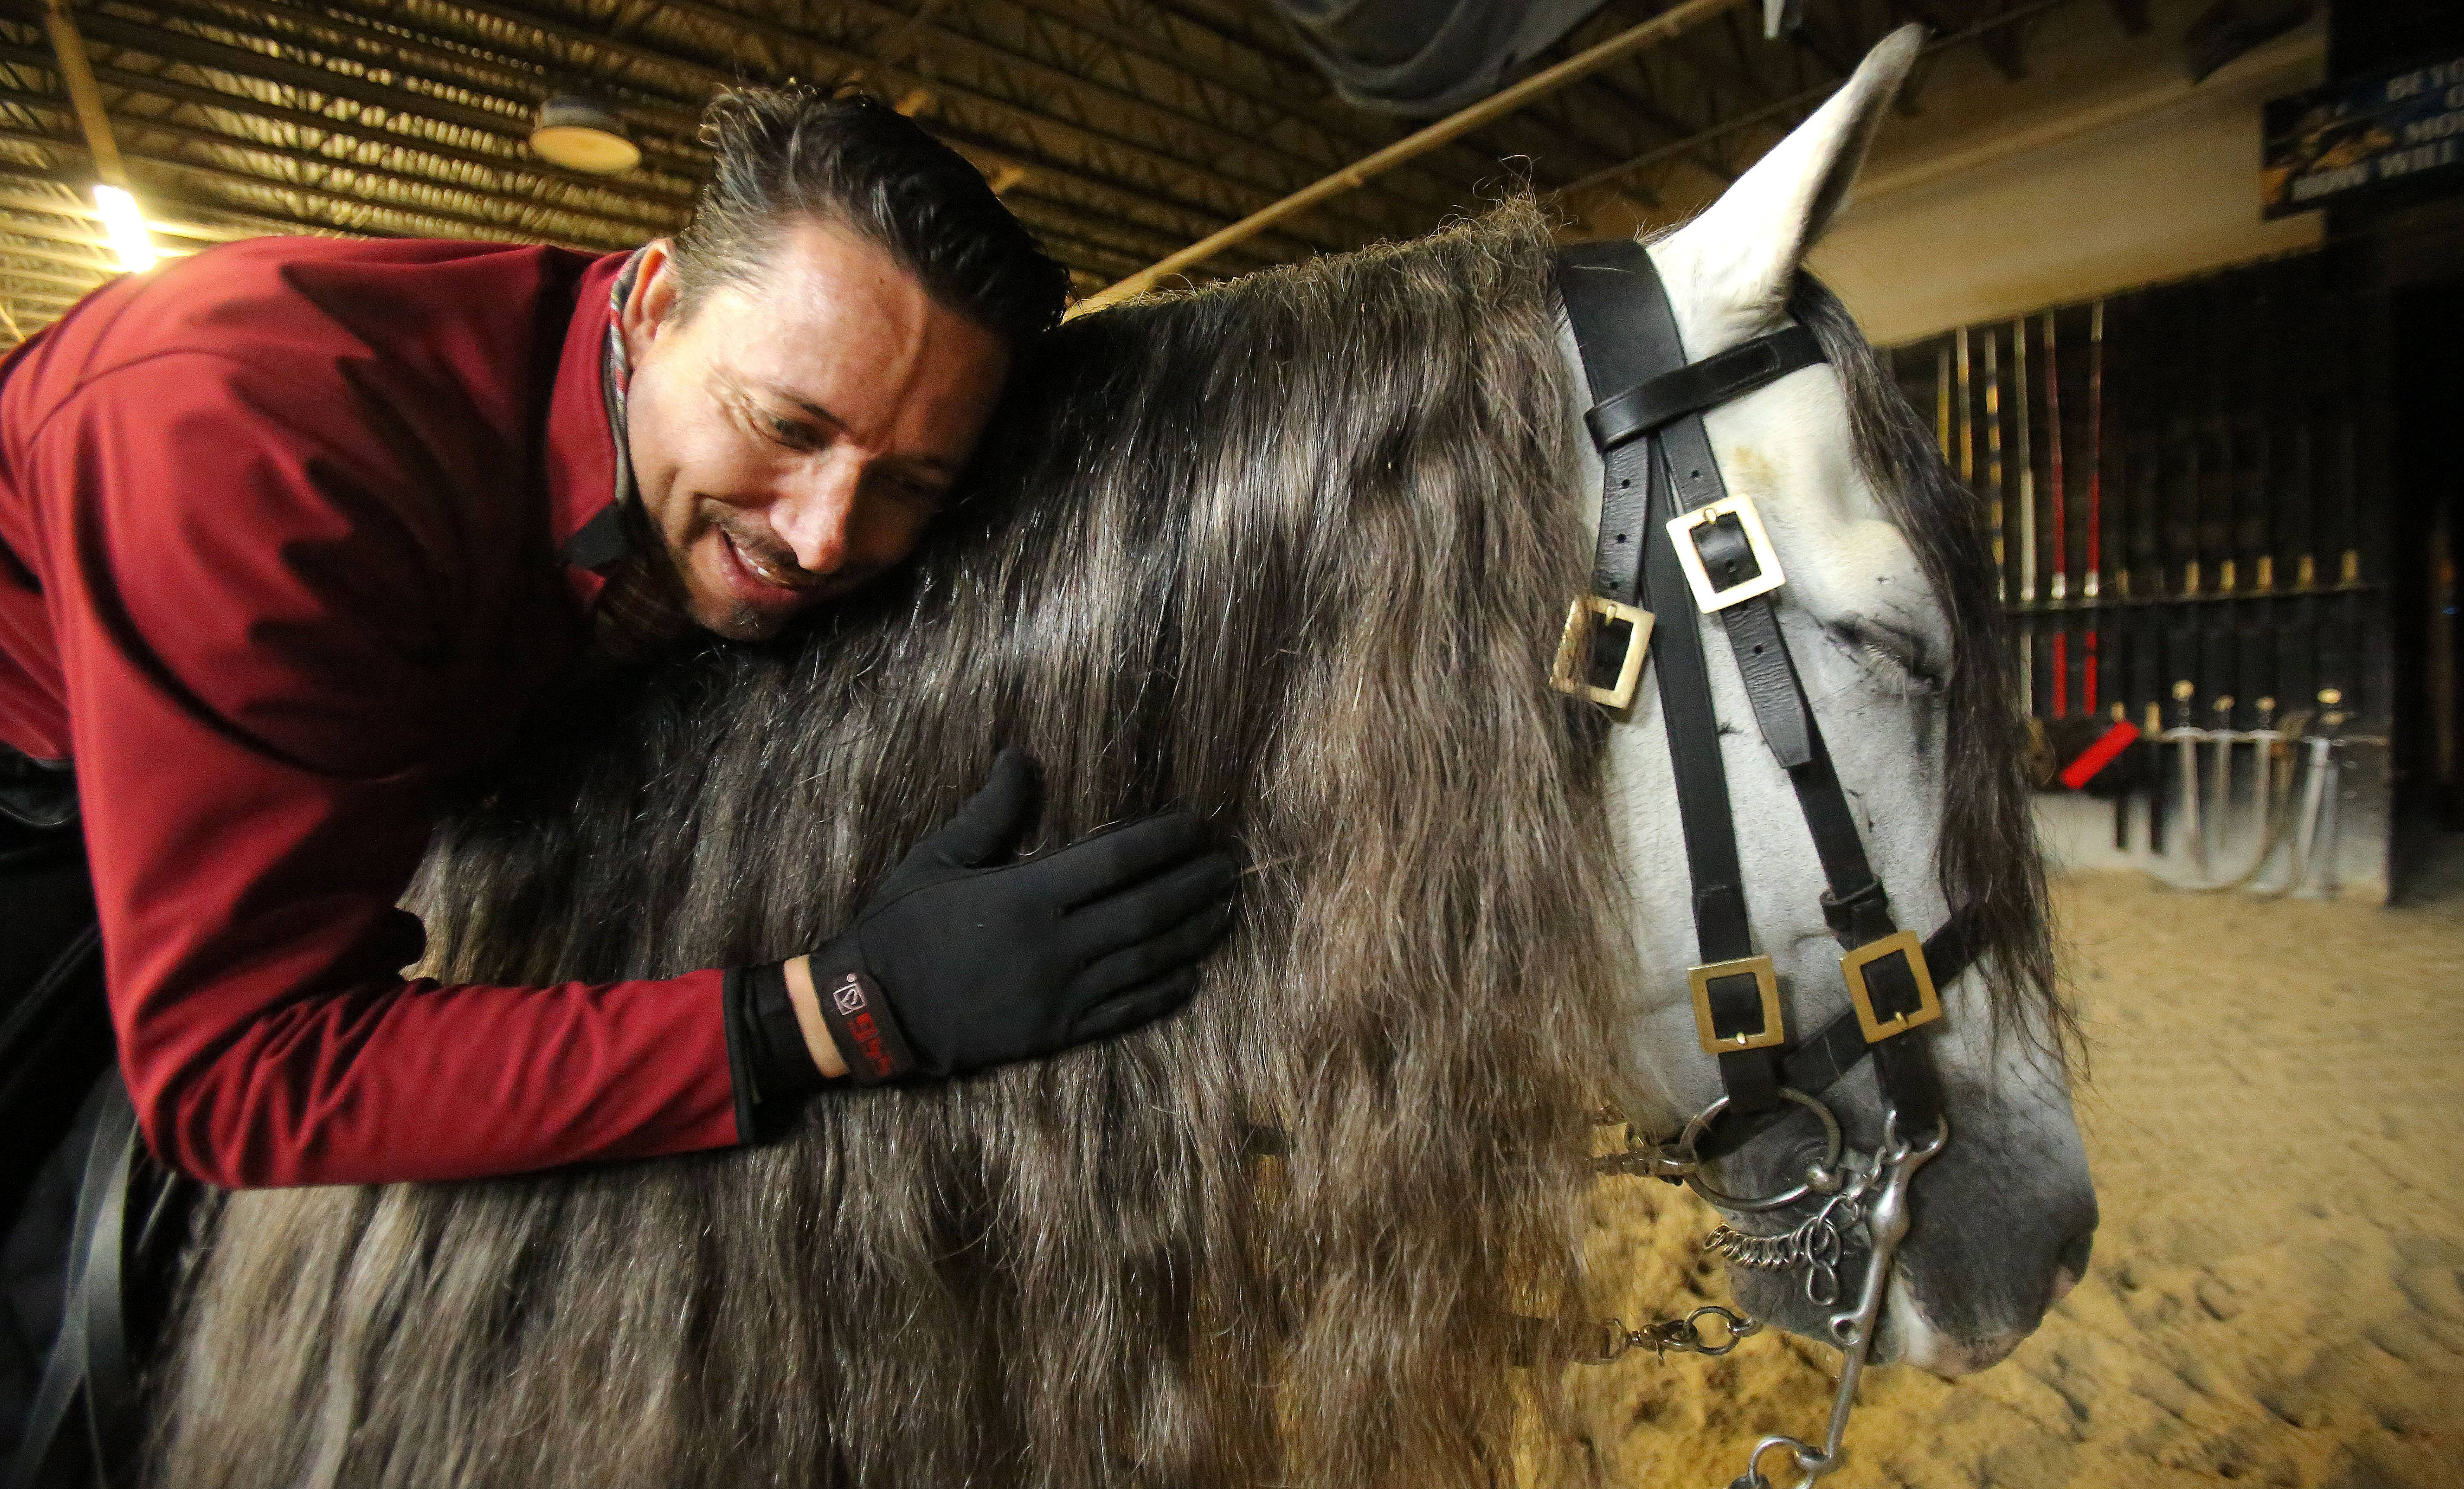 Moving picture: Elgin man trains 'Medieval' stallions